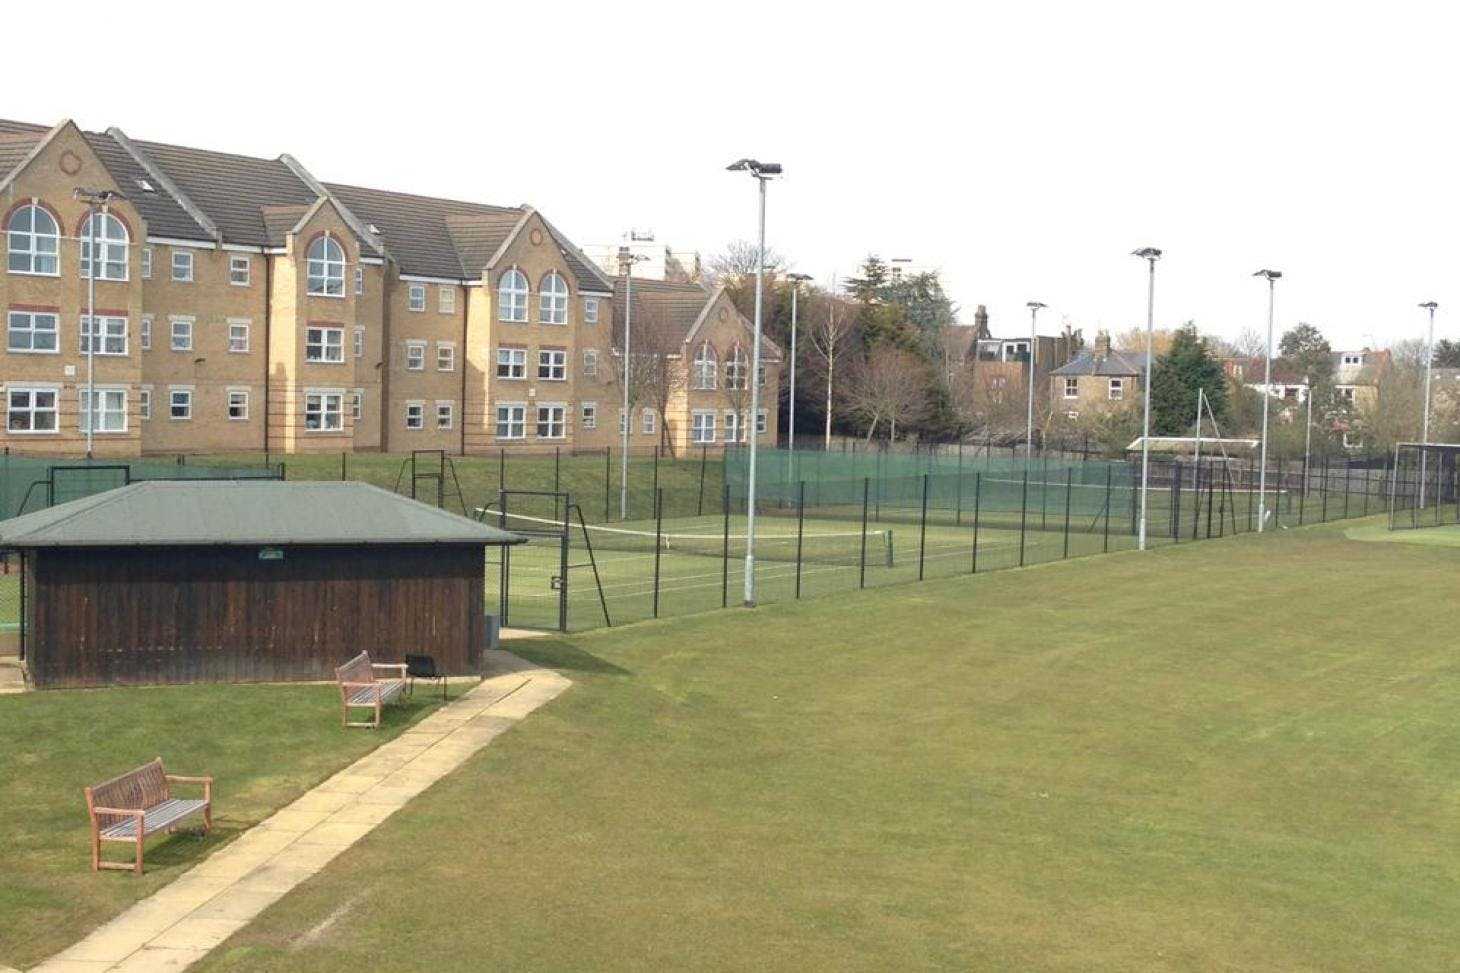 Holtwhites Sports and Social Club Outdoor | Concrete tennis court